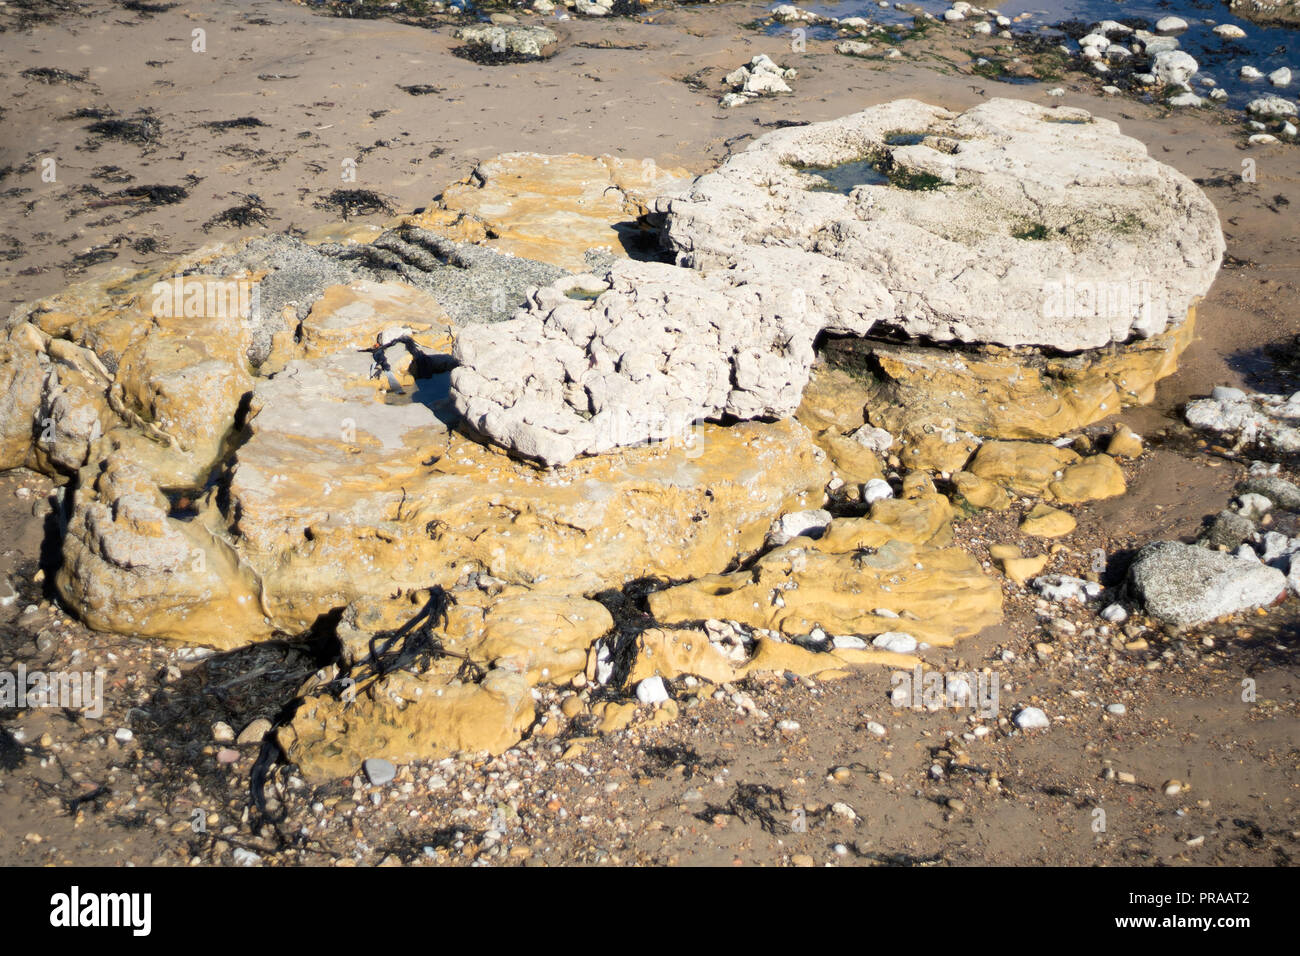 Cannonball rocks or concretionary Limestone over coarse-grained yellow sandstone, Roker beach, Sunderland, north east England, UK - Stock Image